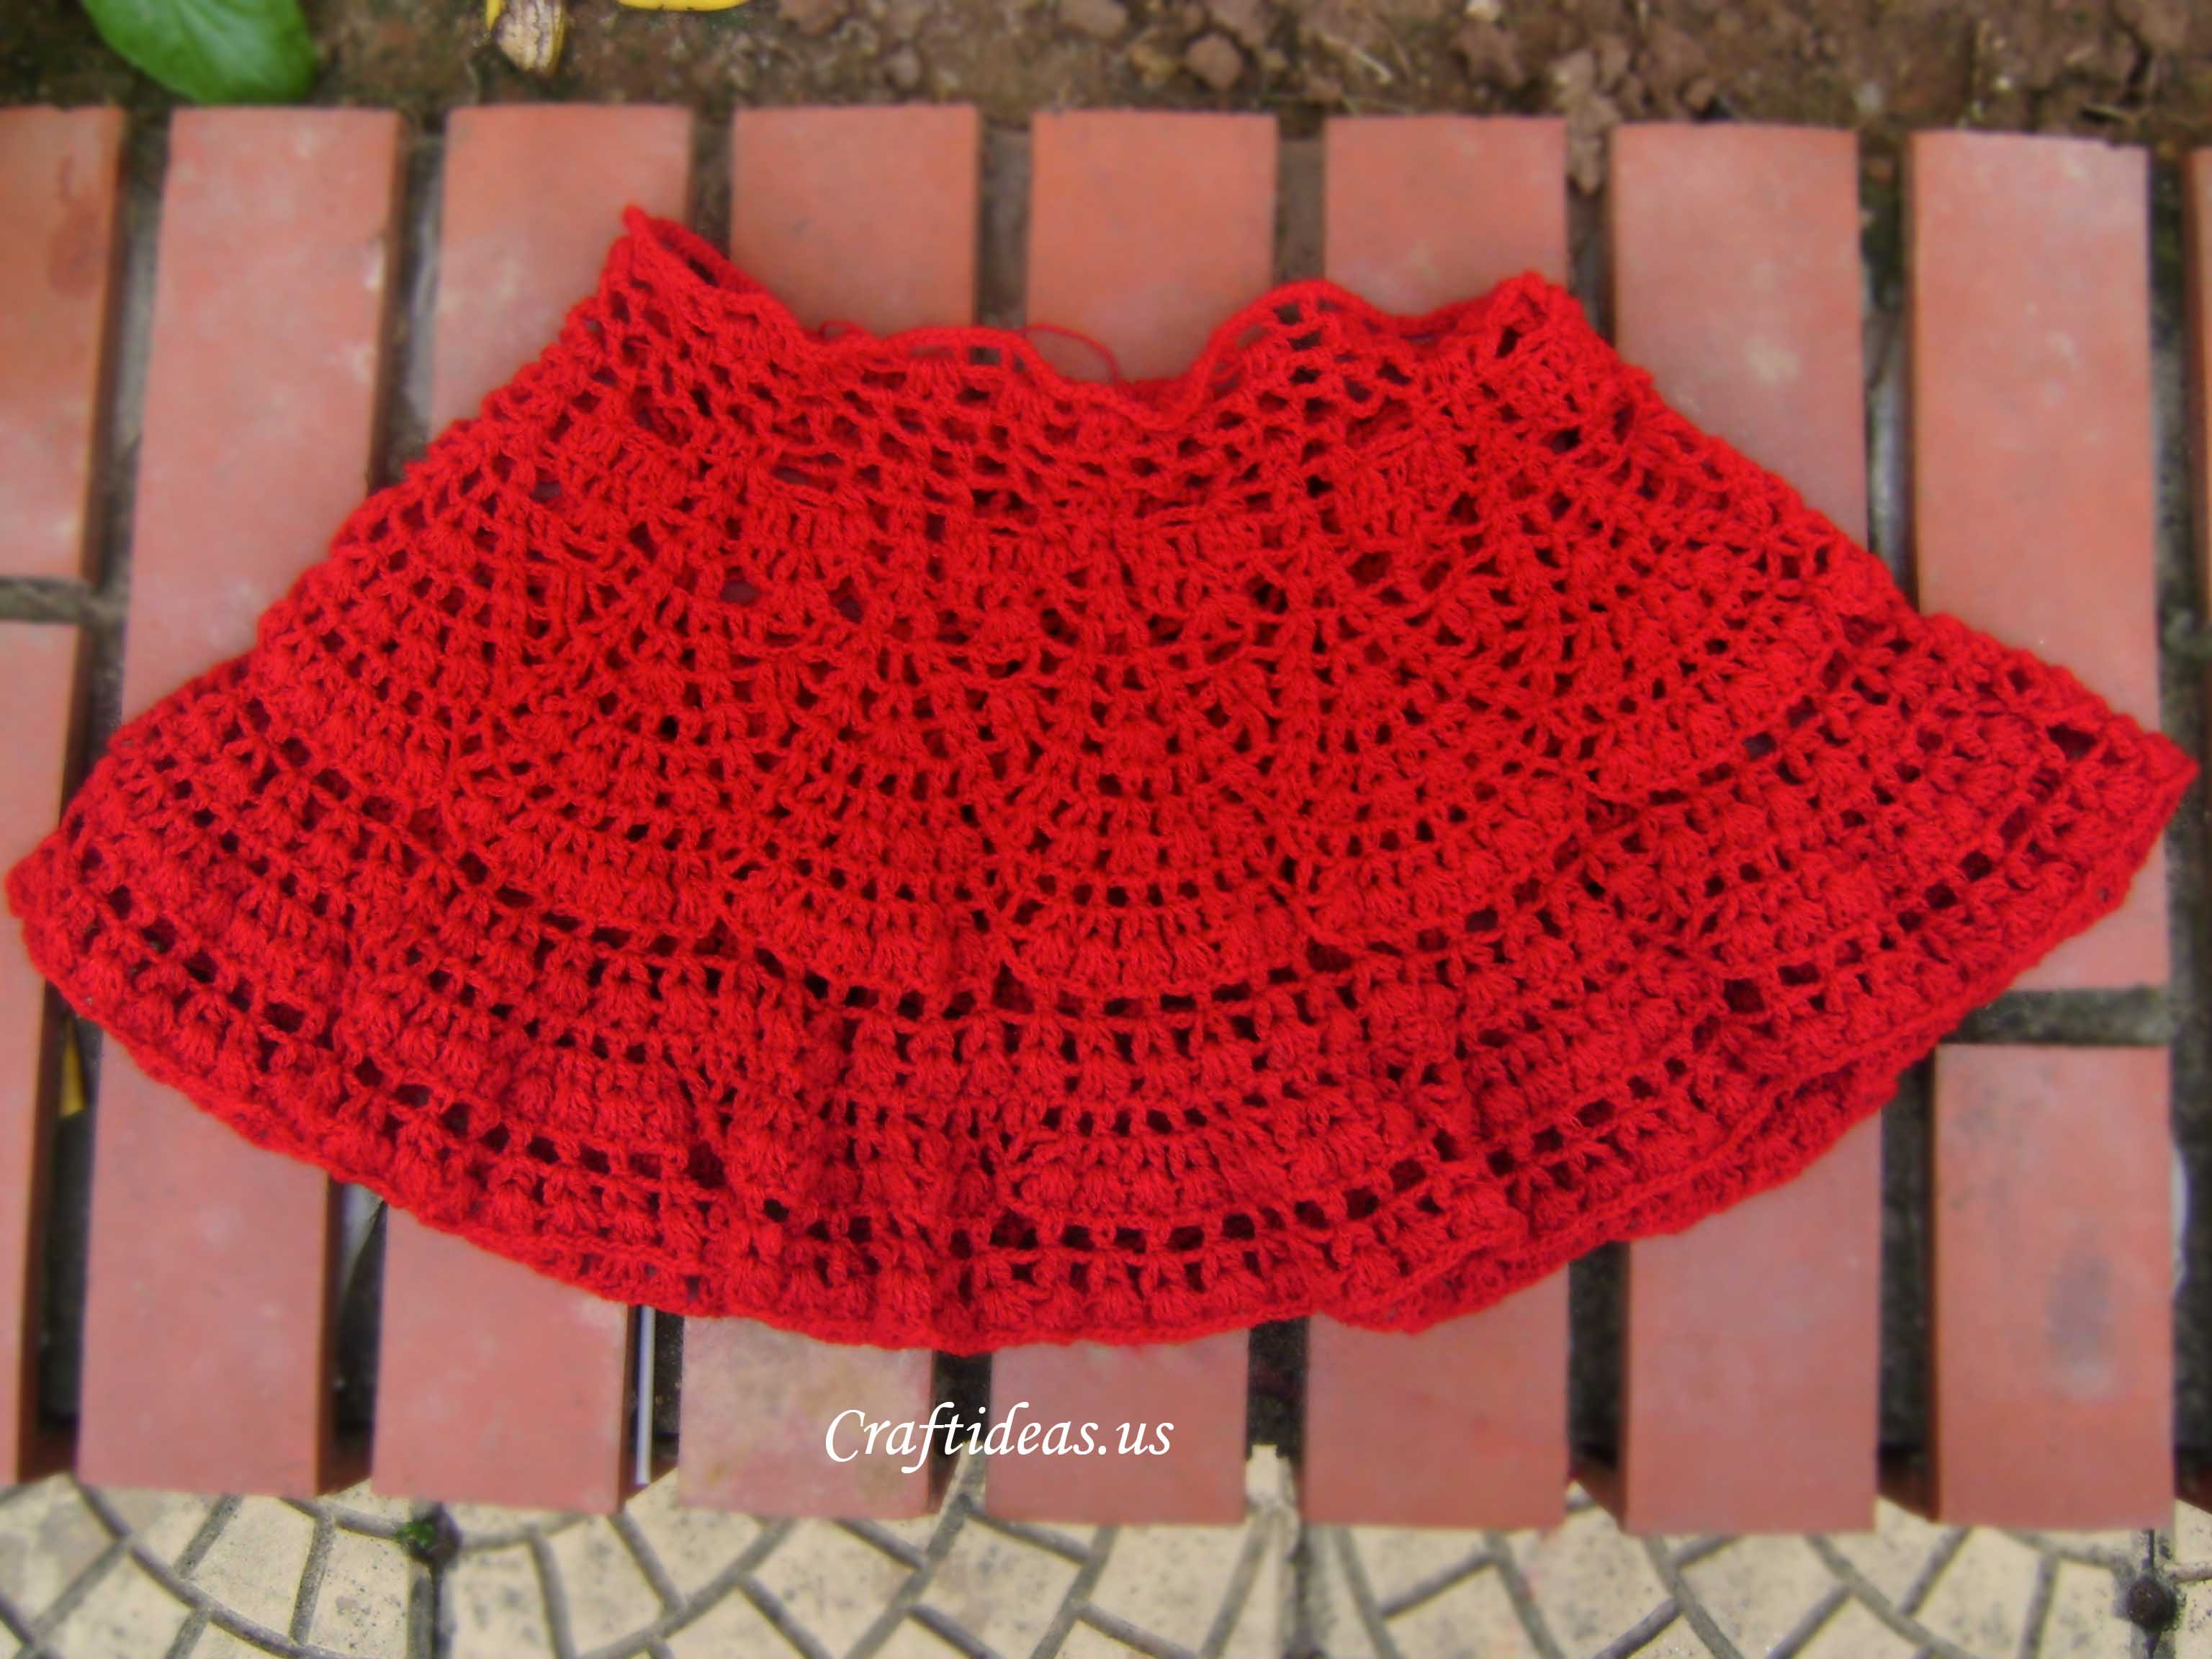 Crochet Patterns Skirt : Crochet pattern: crochet beauty skirt for little girl